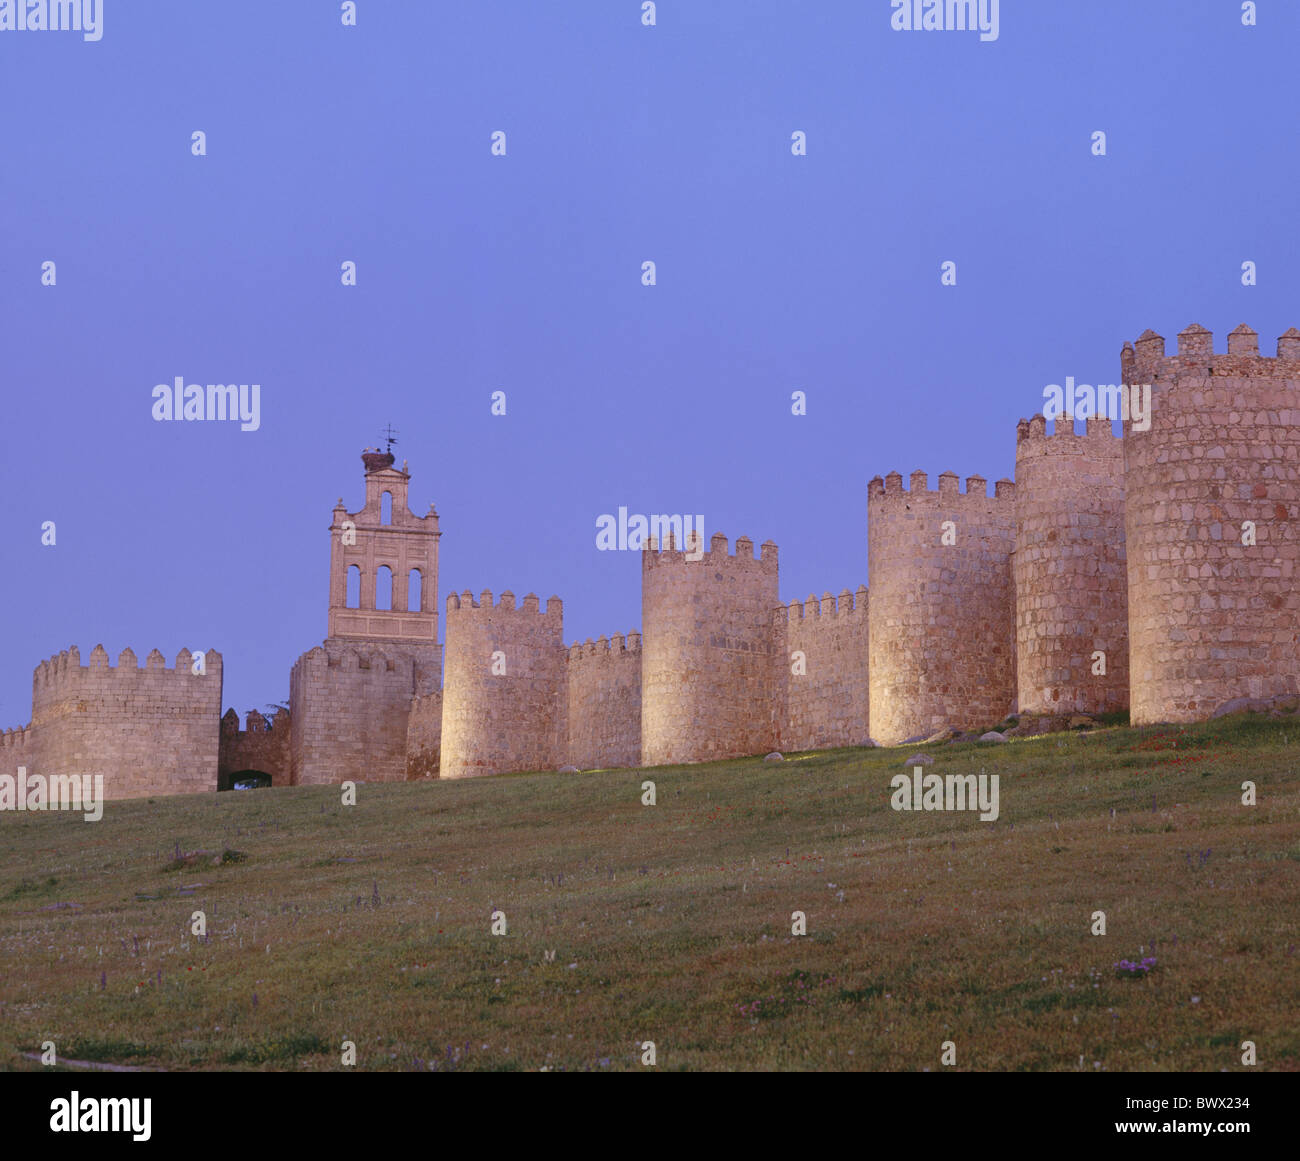 Avila lighting medieval town wall Spain Europe - Stock Image